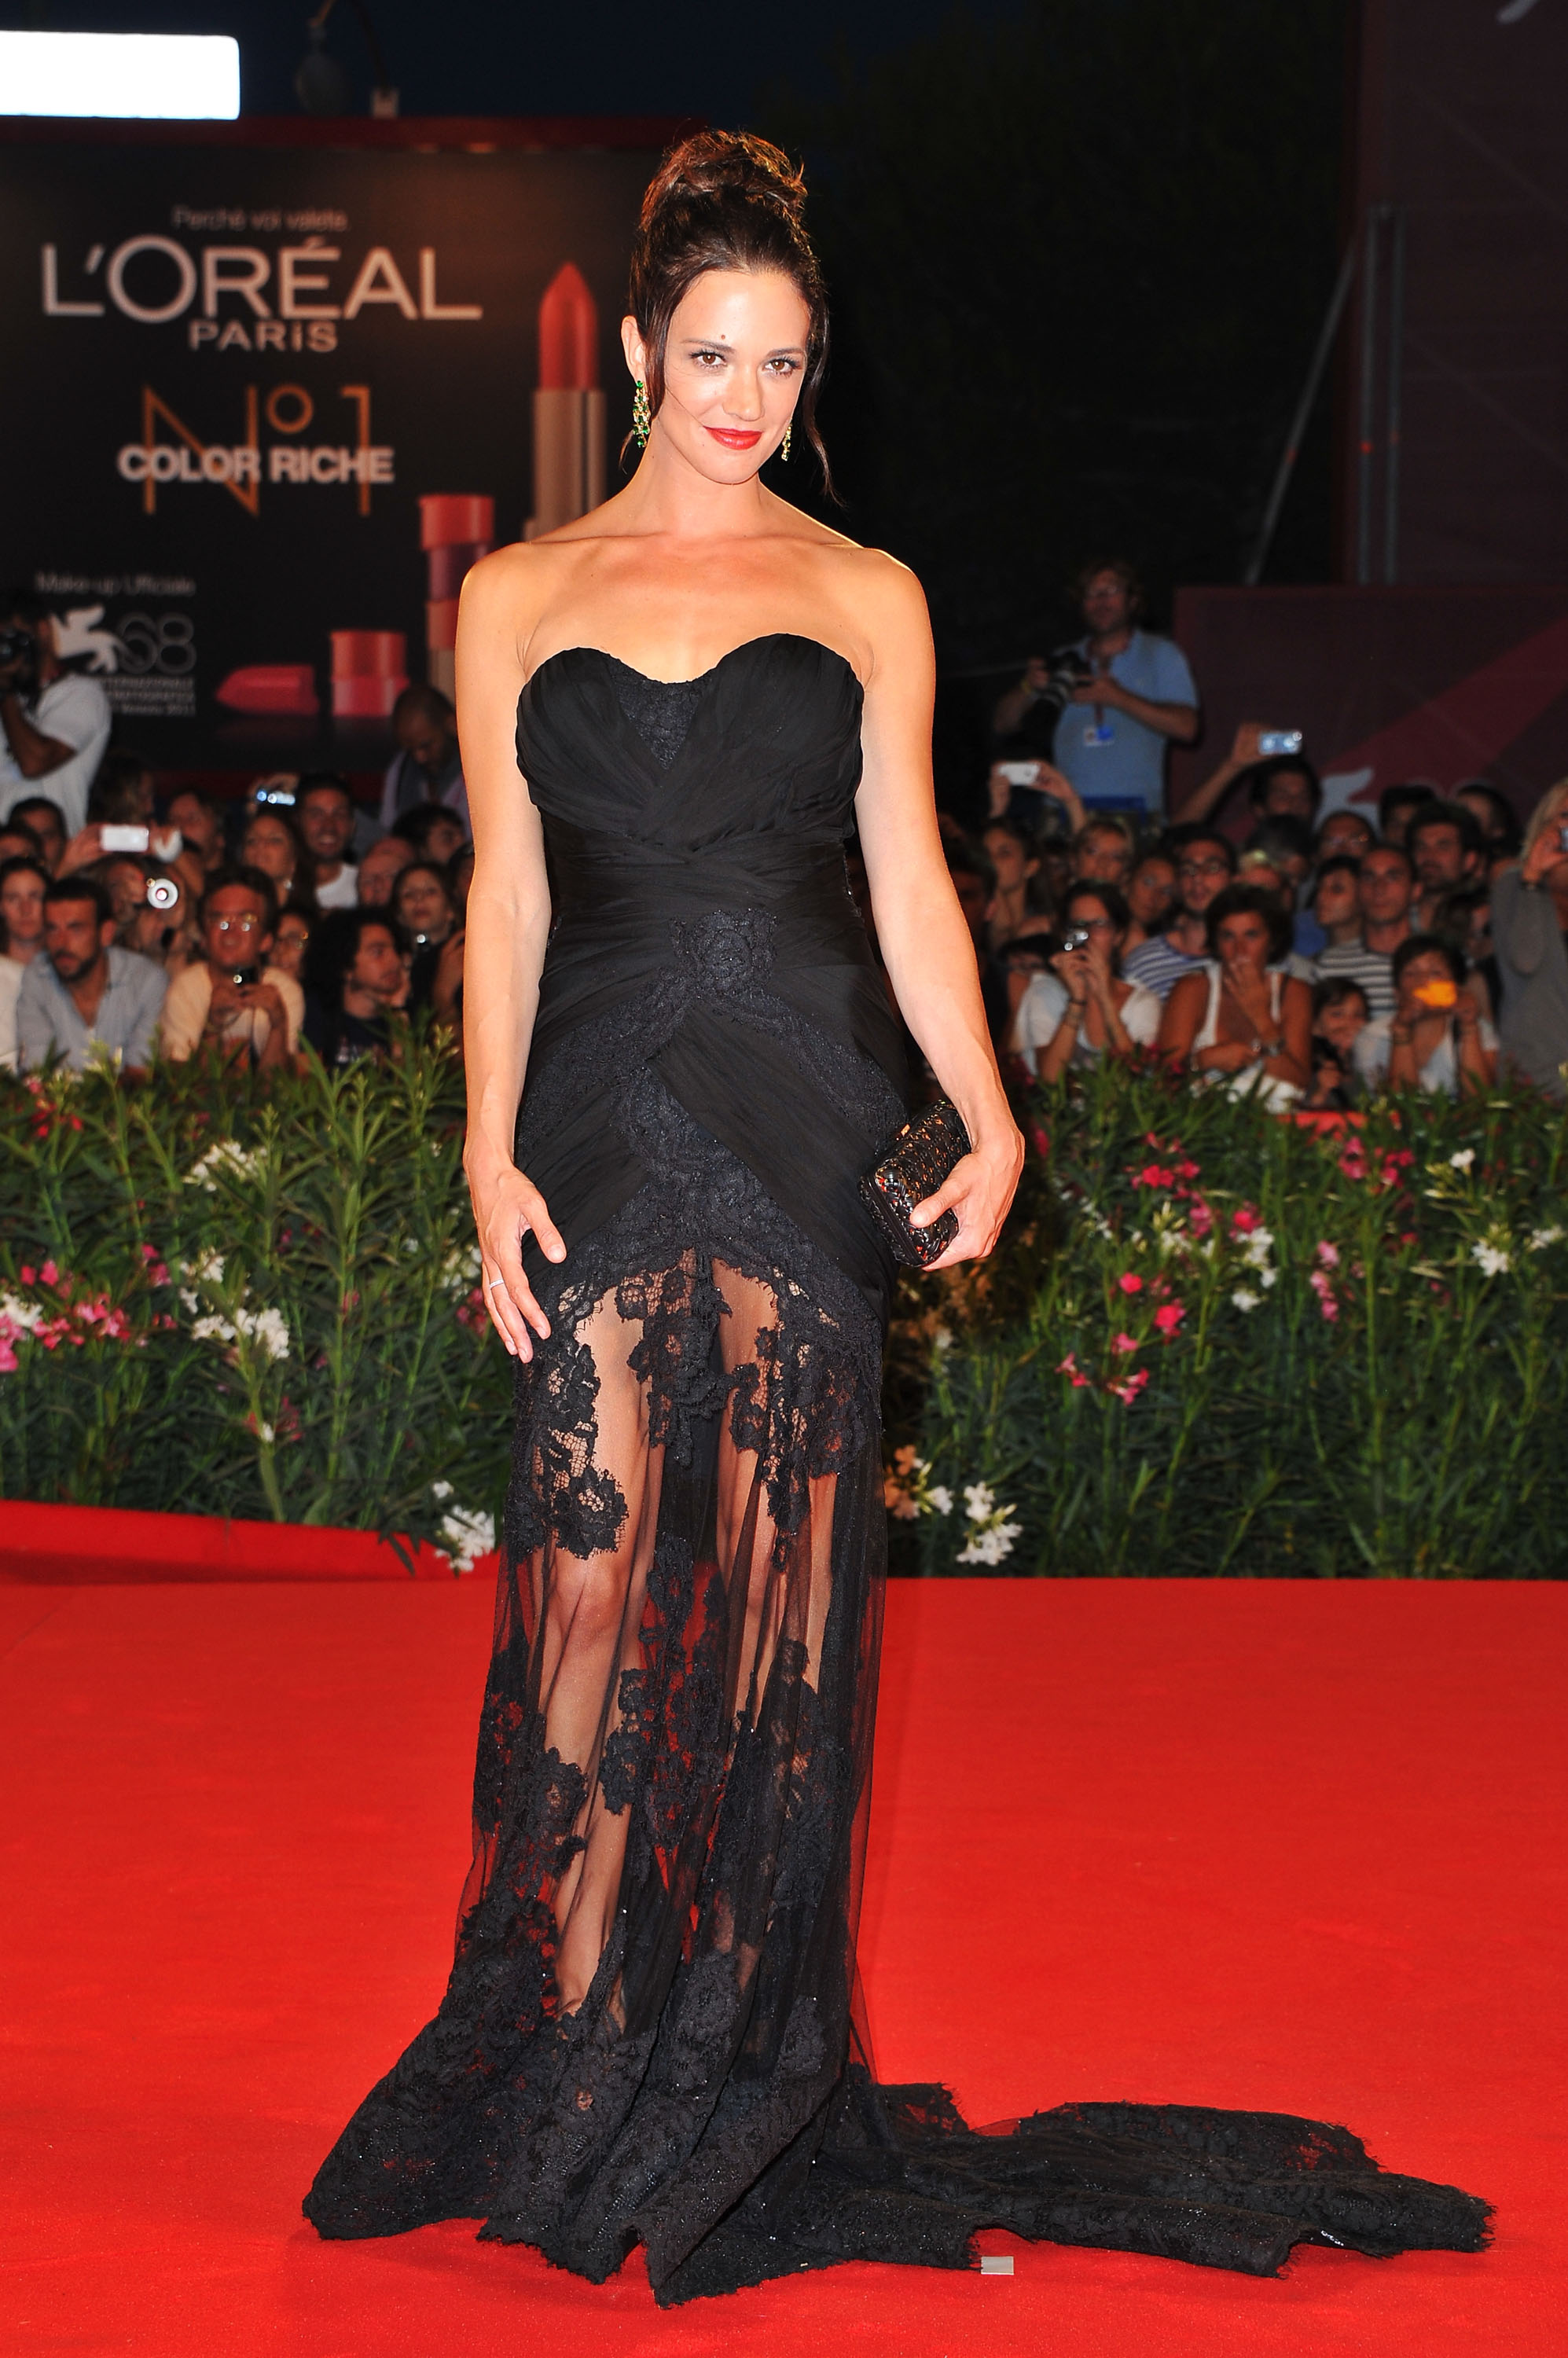 Asia Argento wore a sheer lace gown by Alberta Ferretti.